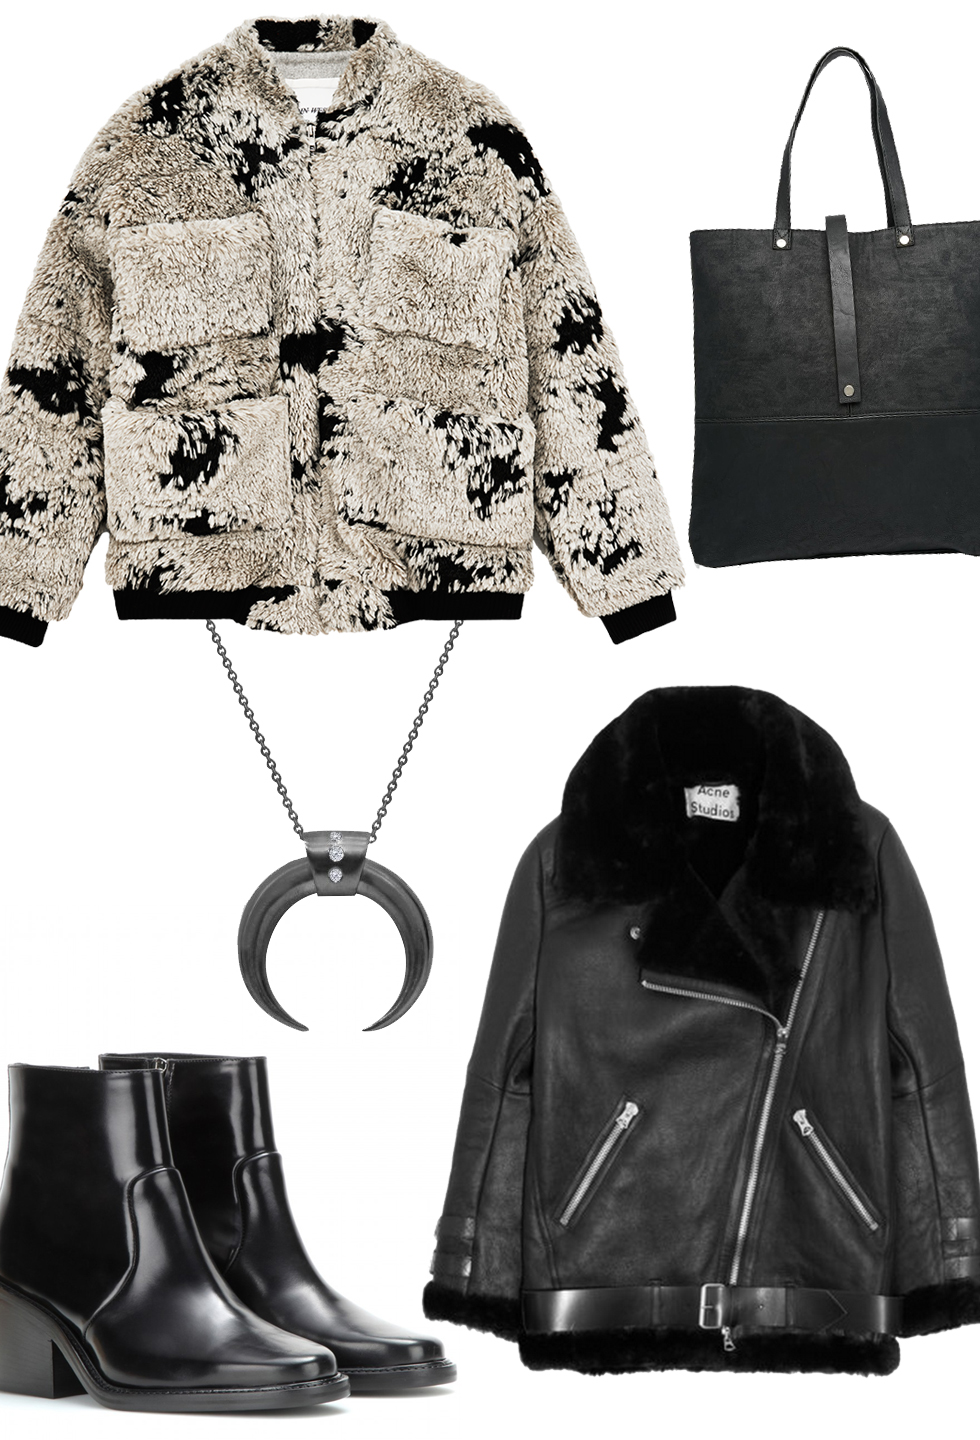 acne-collage